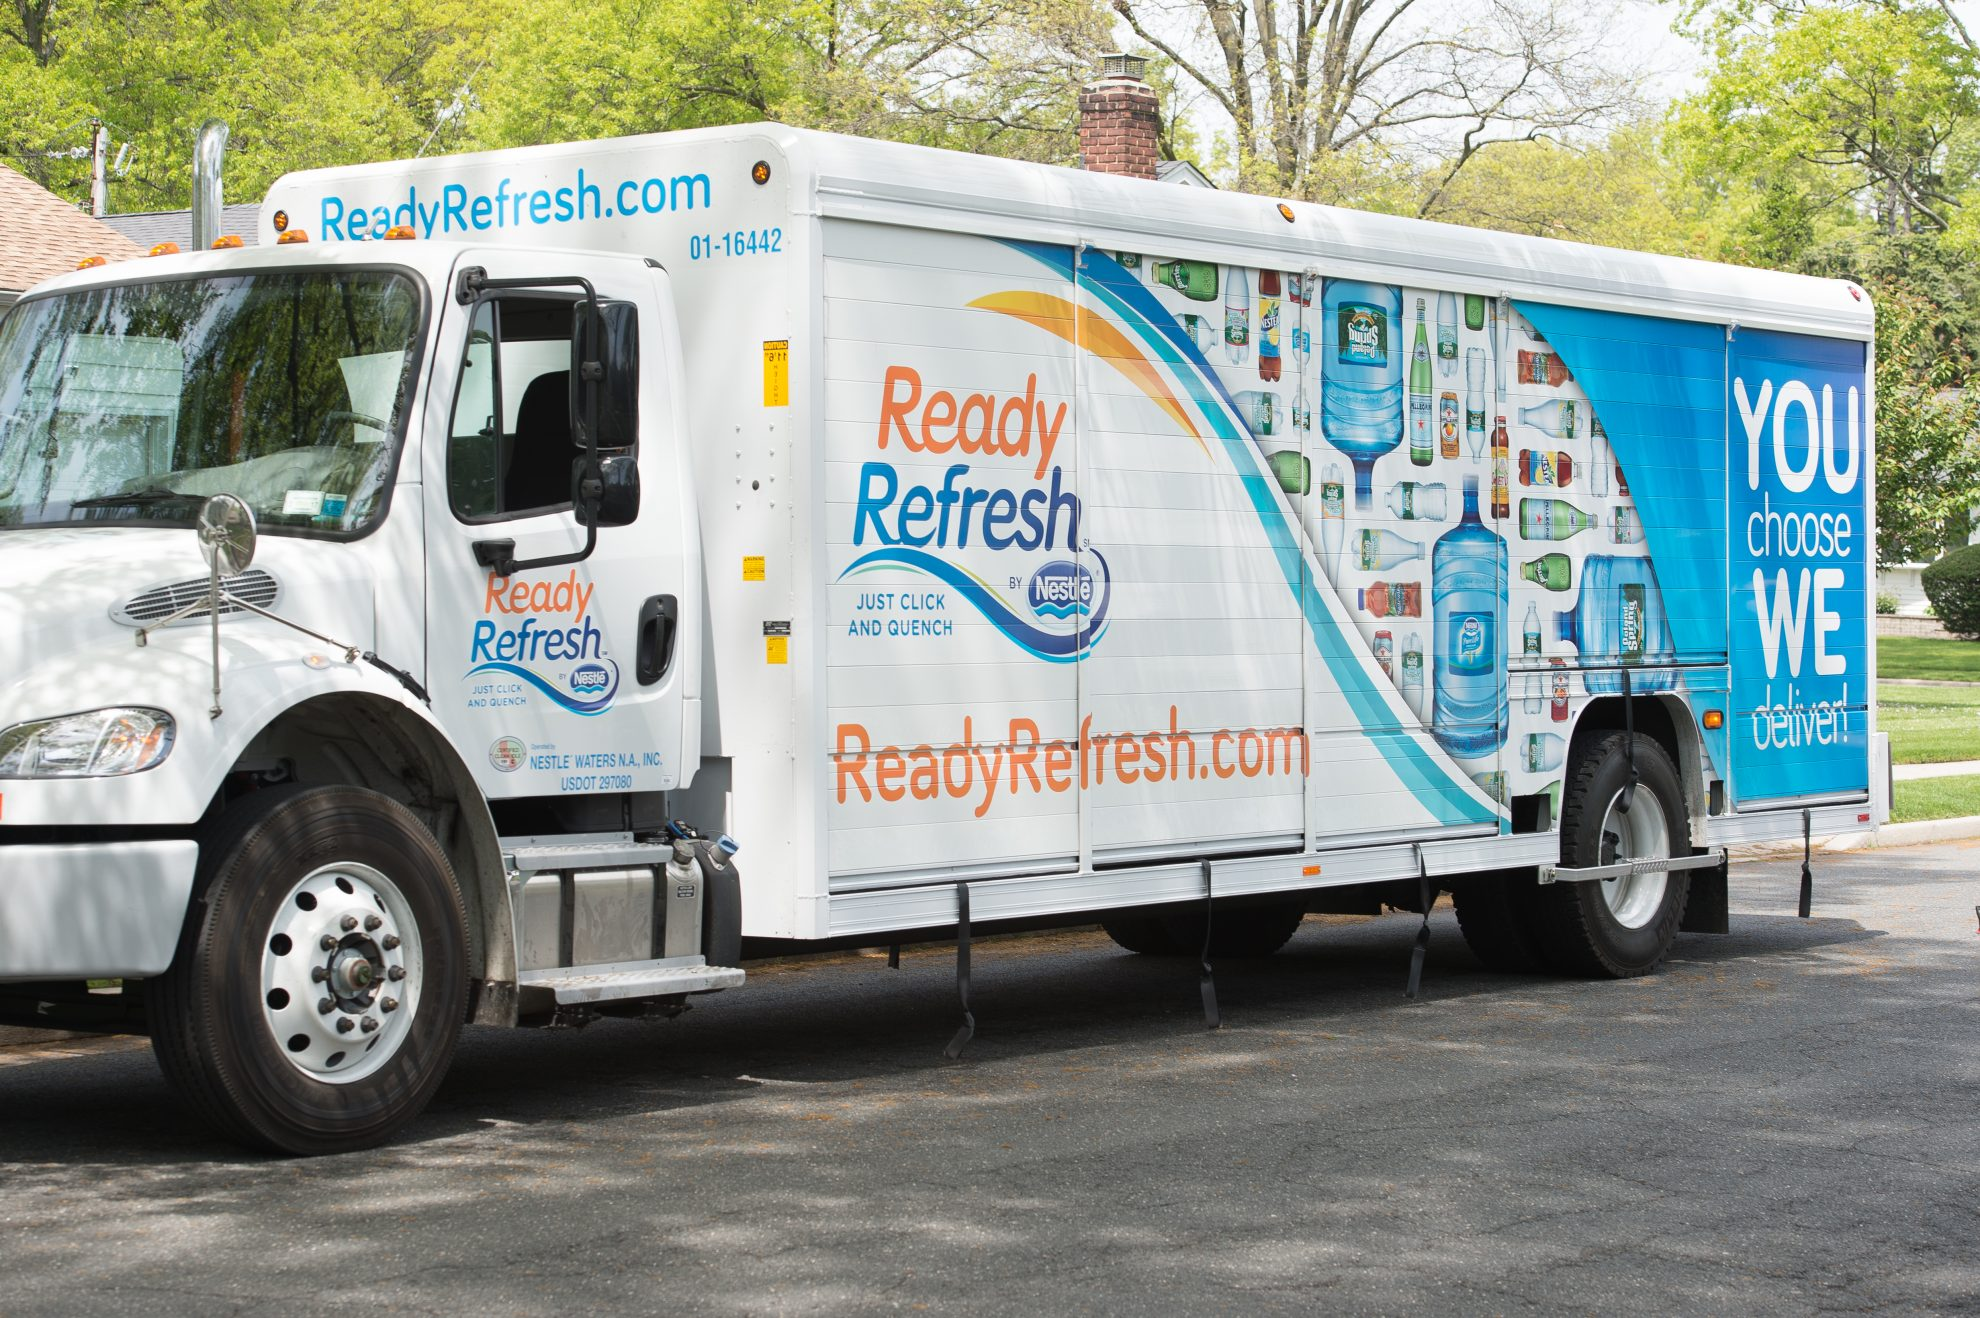 End the Fear of Running Out with ReadyRefresh℠ by Nestlé® : #NoMoreFORO